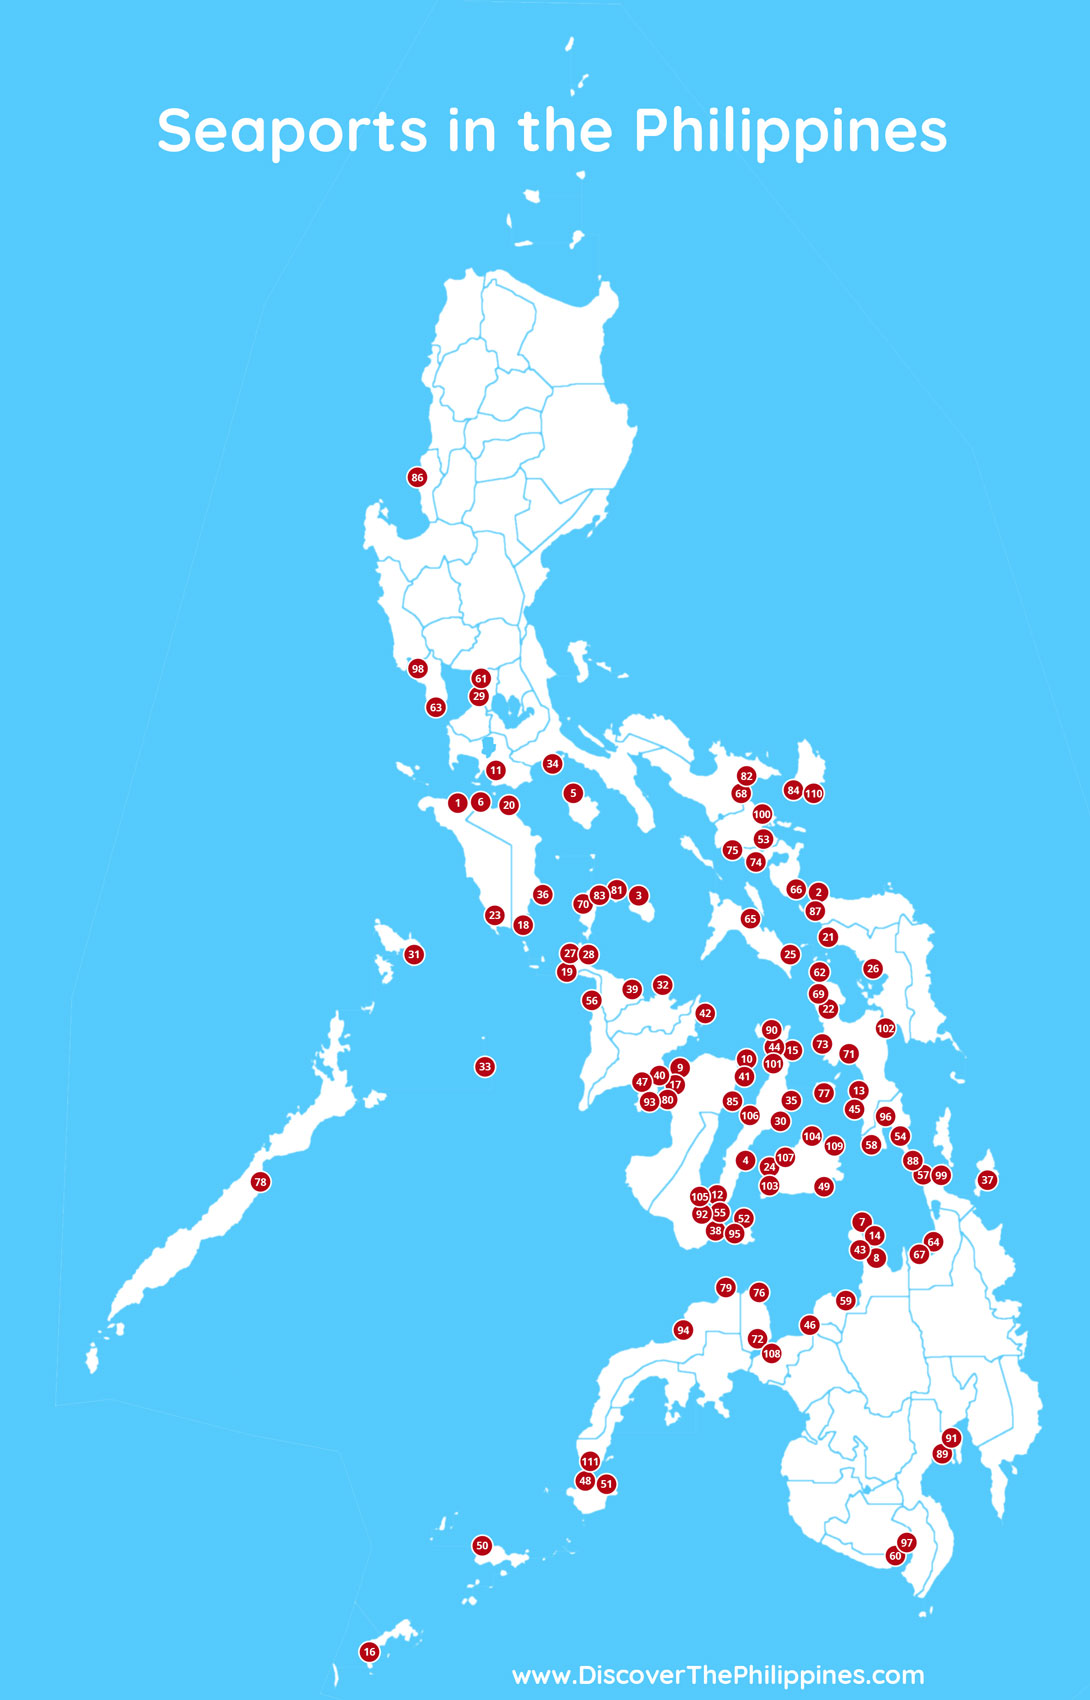 Seaports in the Philippines Map